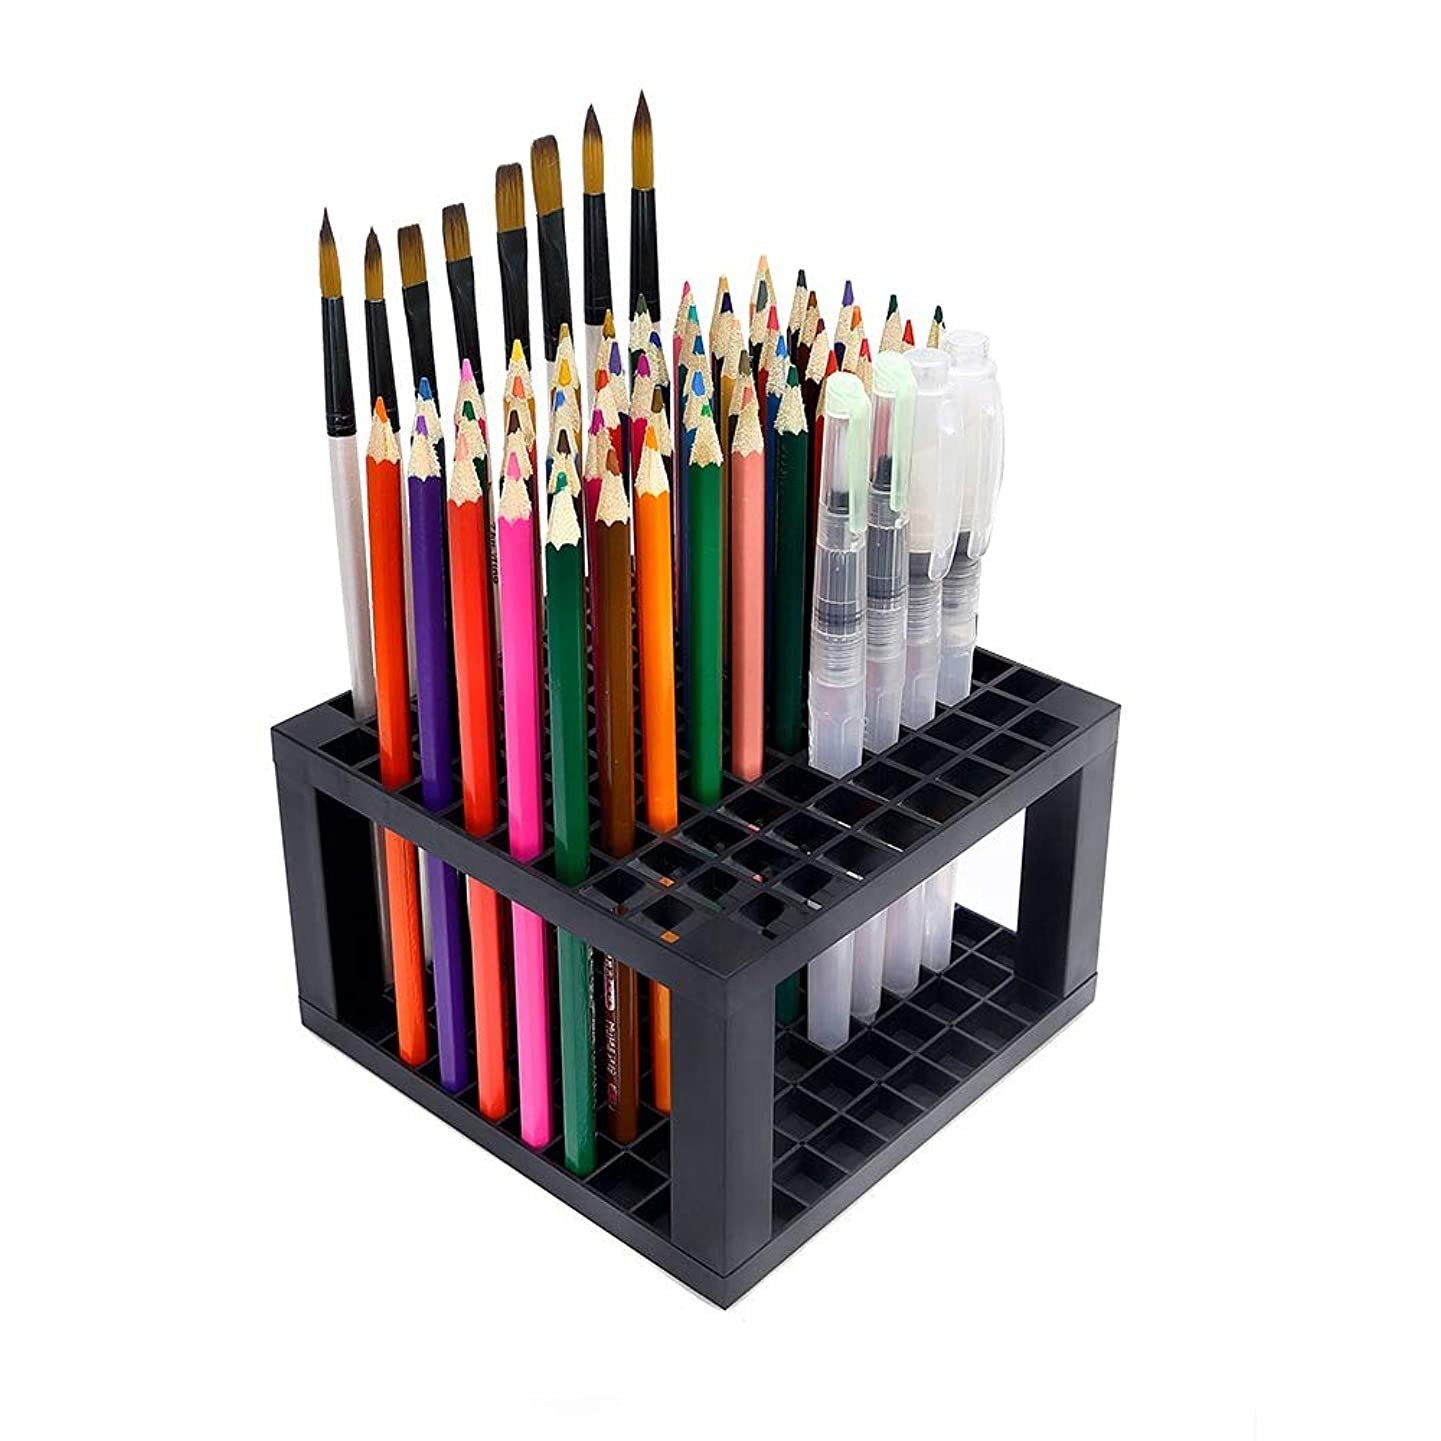 Ationgle 96 Hole Brush Holder, Plastic Brush Rack Perfect for Paint Brushes, Pencils, Pens, Markers, Holder Desk Stand Organizer, Office Supplies (Single)